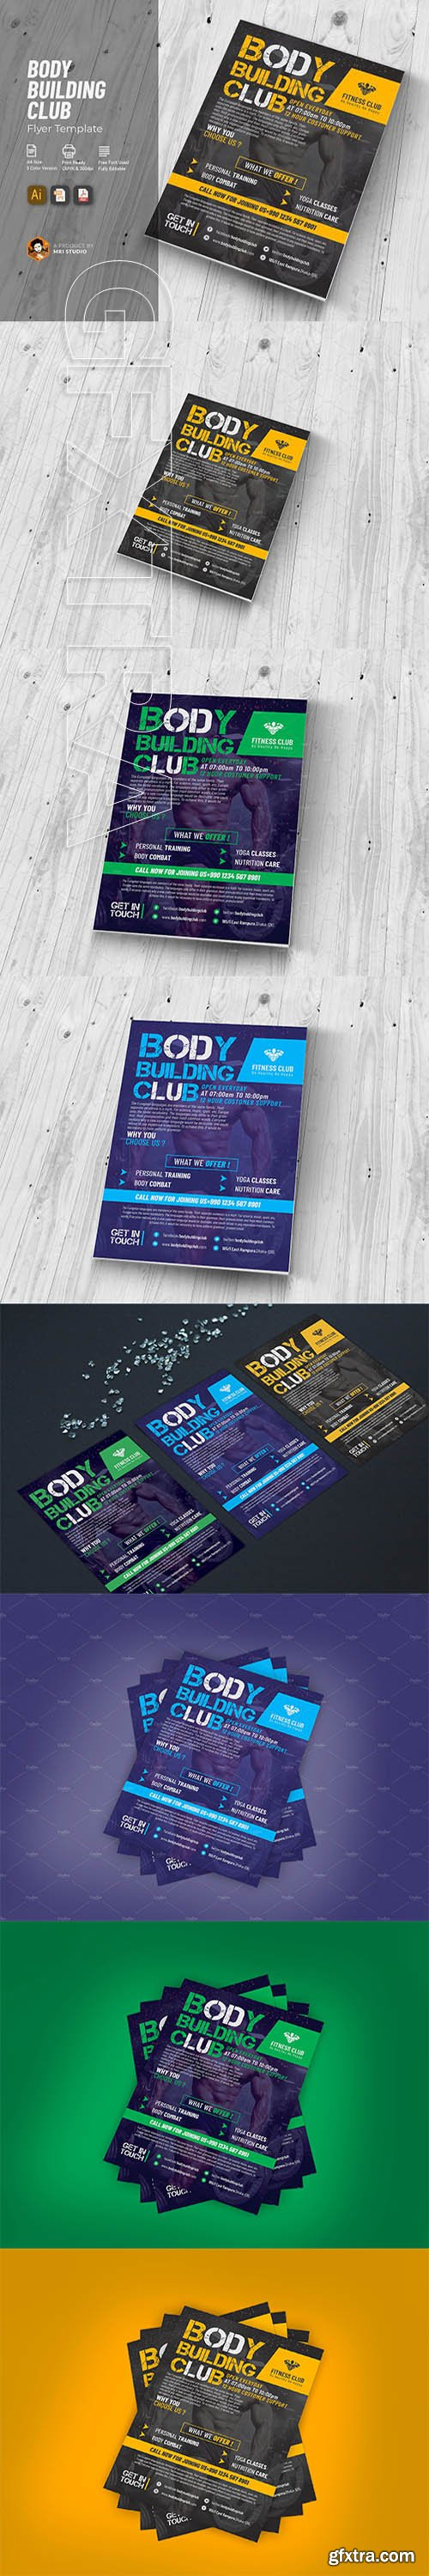 CreativeMarket - Body Building Club Flyer 2636793